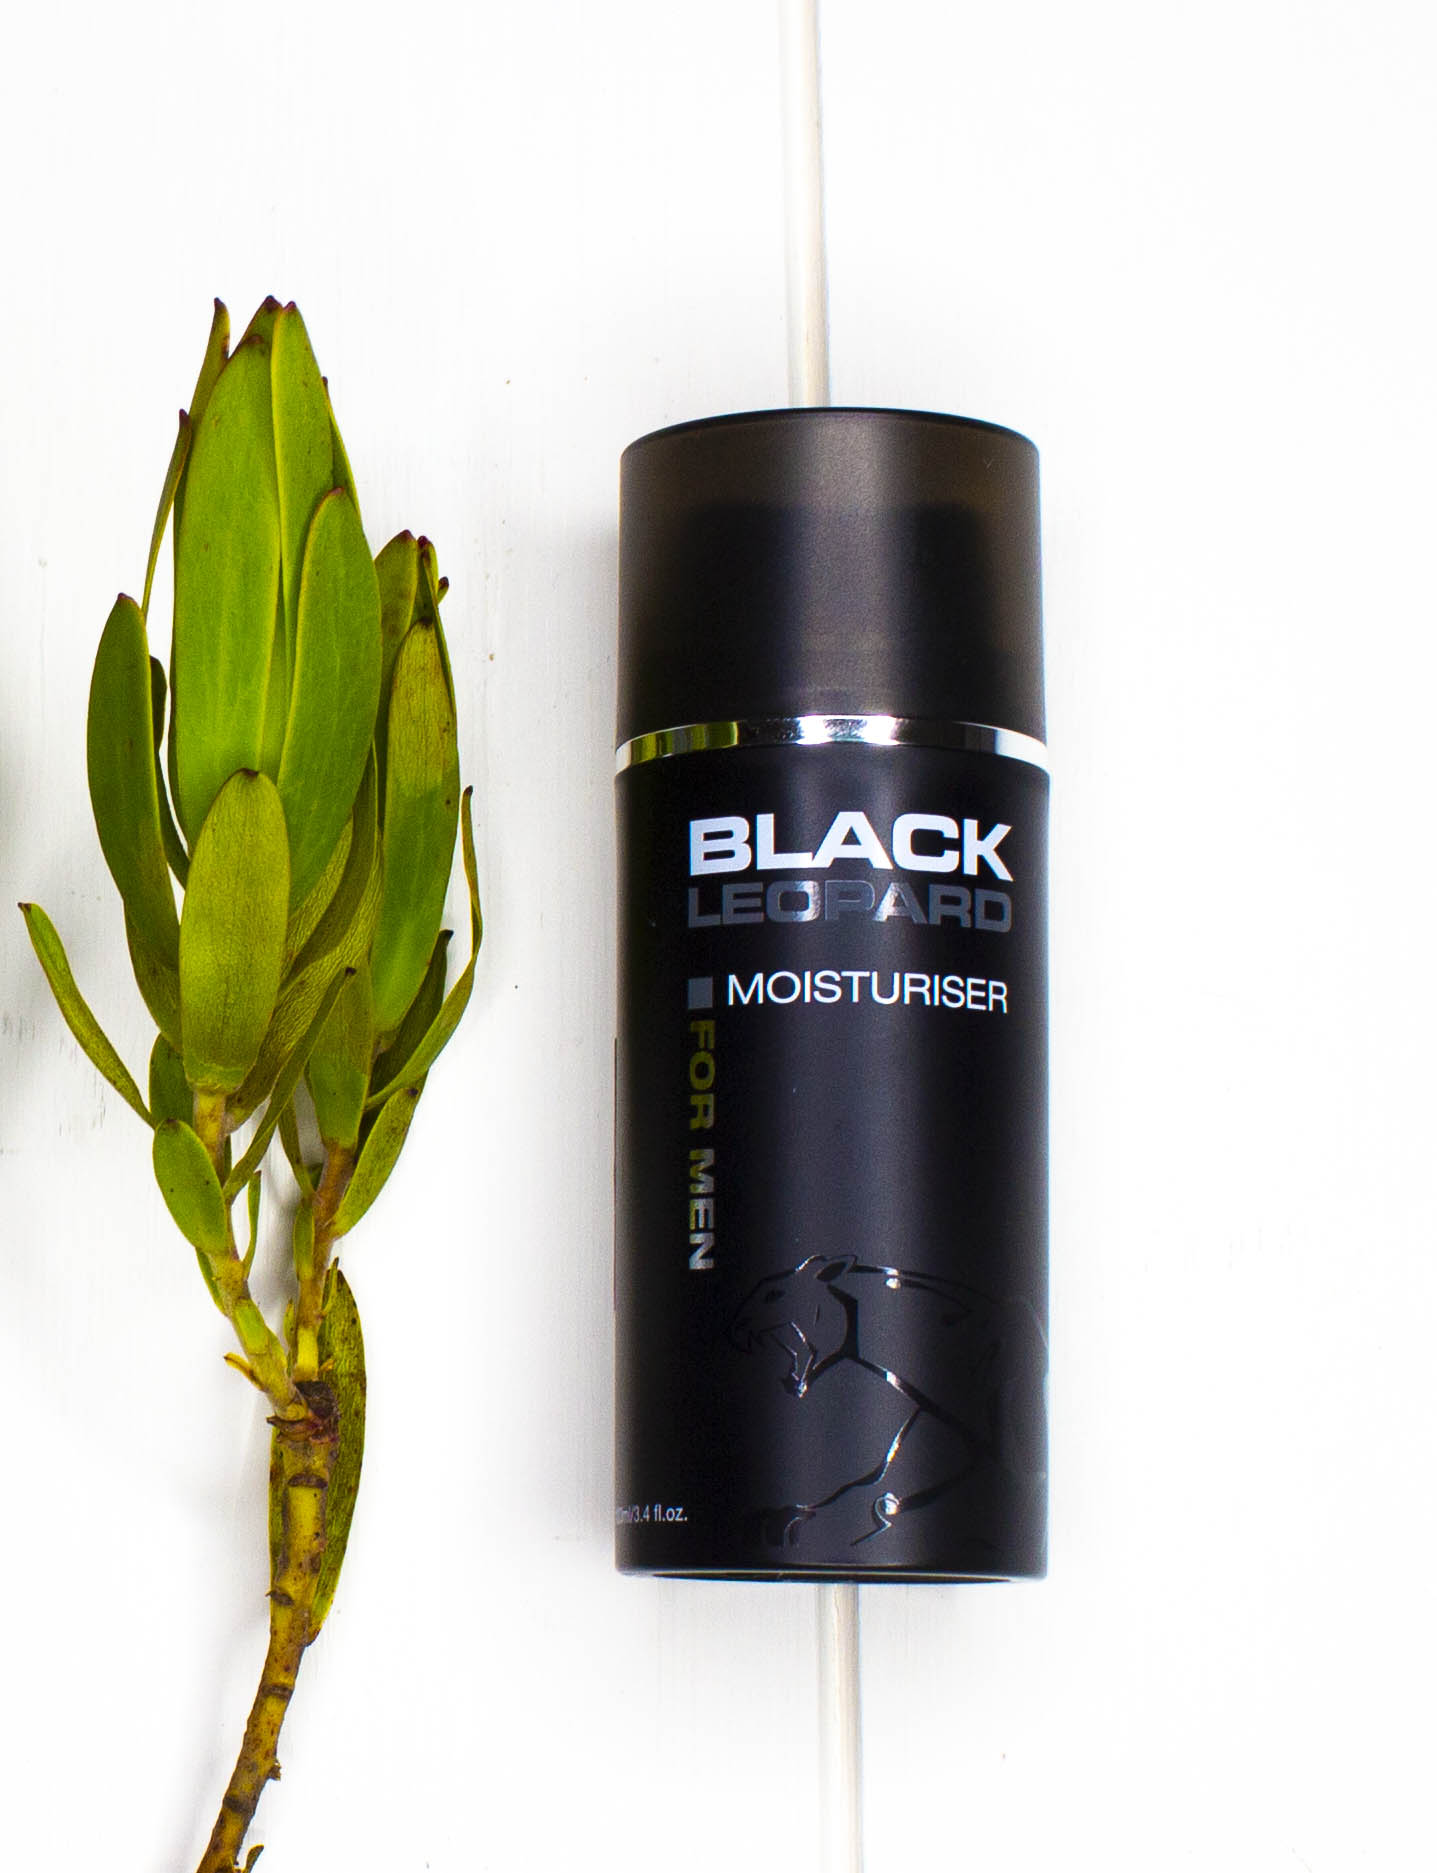 Black Leopard, Black Leopard skincare, black Leopard review, dadbloguk, uk dad blog, men's skincare, men's grooming